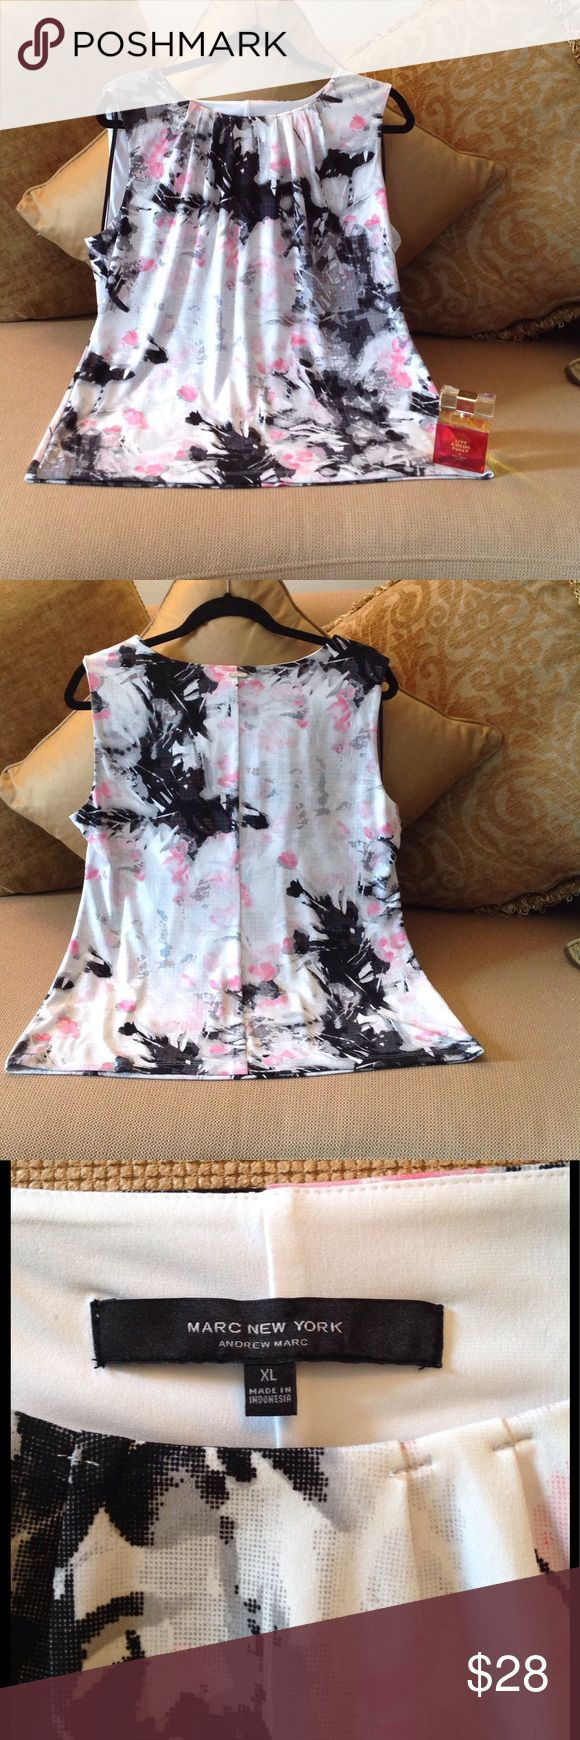 🍃🌸 'Andrew Marc' - Marc New York Top🍃 New Condition Andrew Marc Top. Size XL. Extremely pretty and well made. It keeps it shape very well.  Pretty 'gathers' at the neckline. Check out the Silver Plate on the back neckline!  Gorgeous pattern of Pink/White/Black. Made of Polyester and Spandex blend. 🍃 Andrew Marc Tops